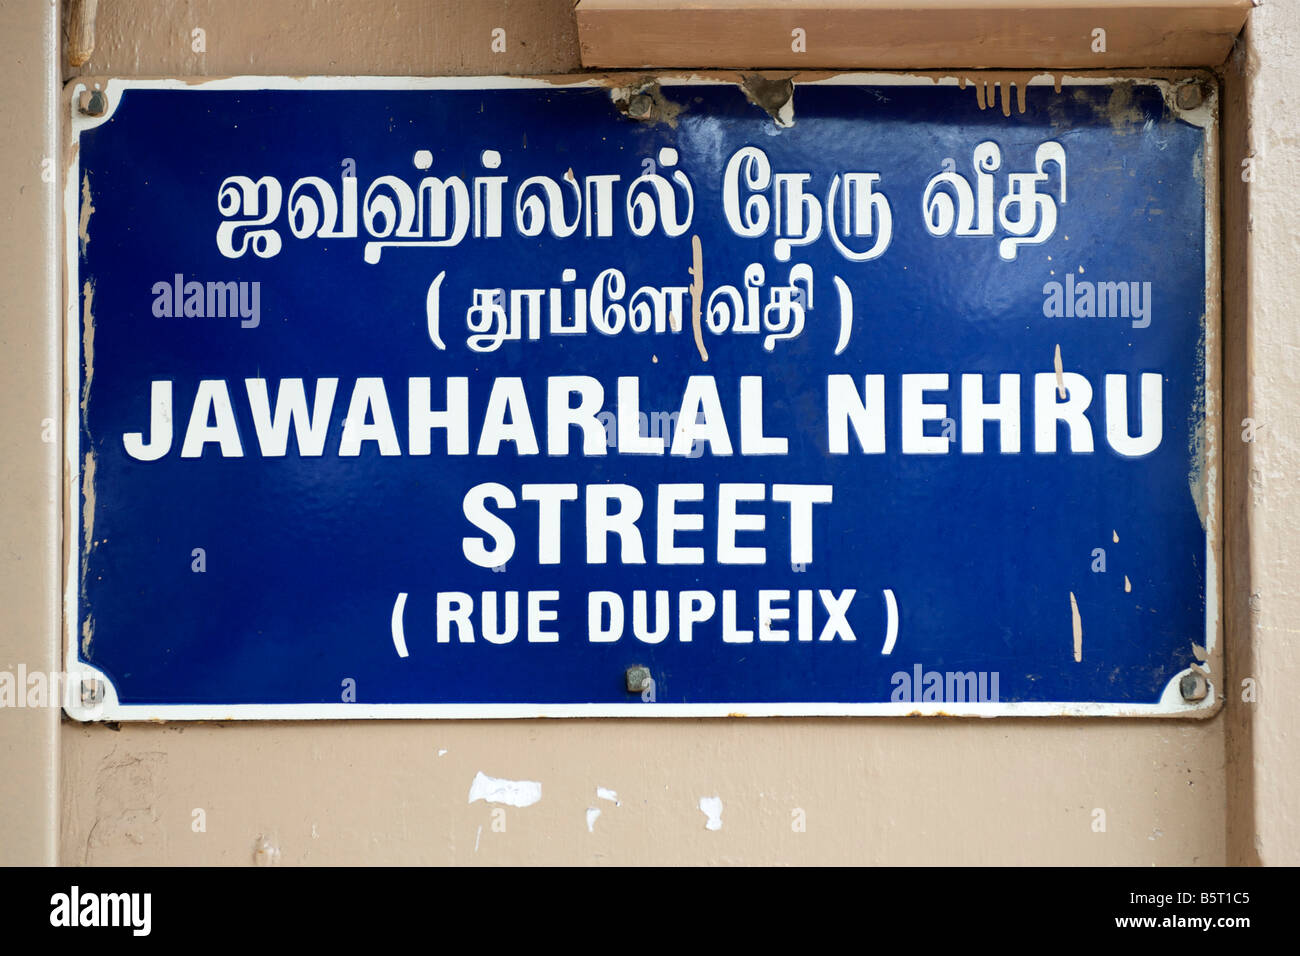 Street sign in French and Tamil in Pondicherry India. - Stock Image